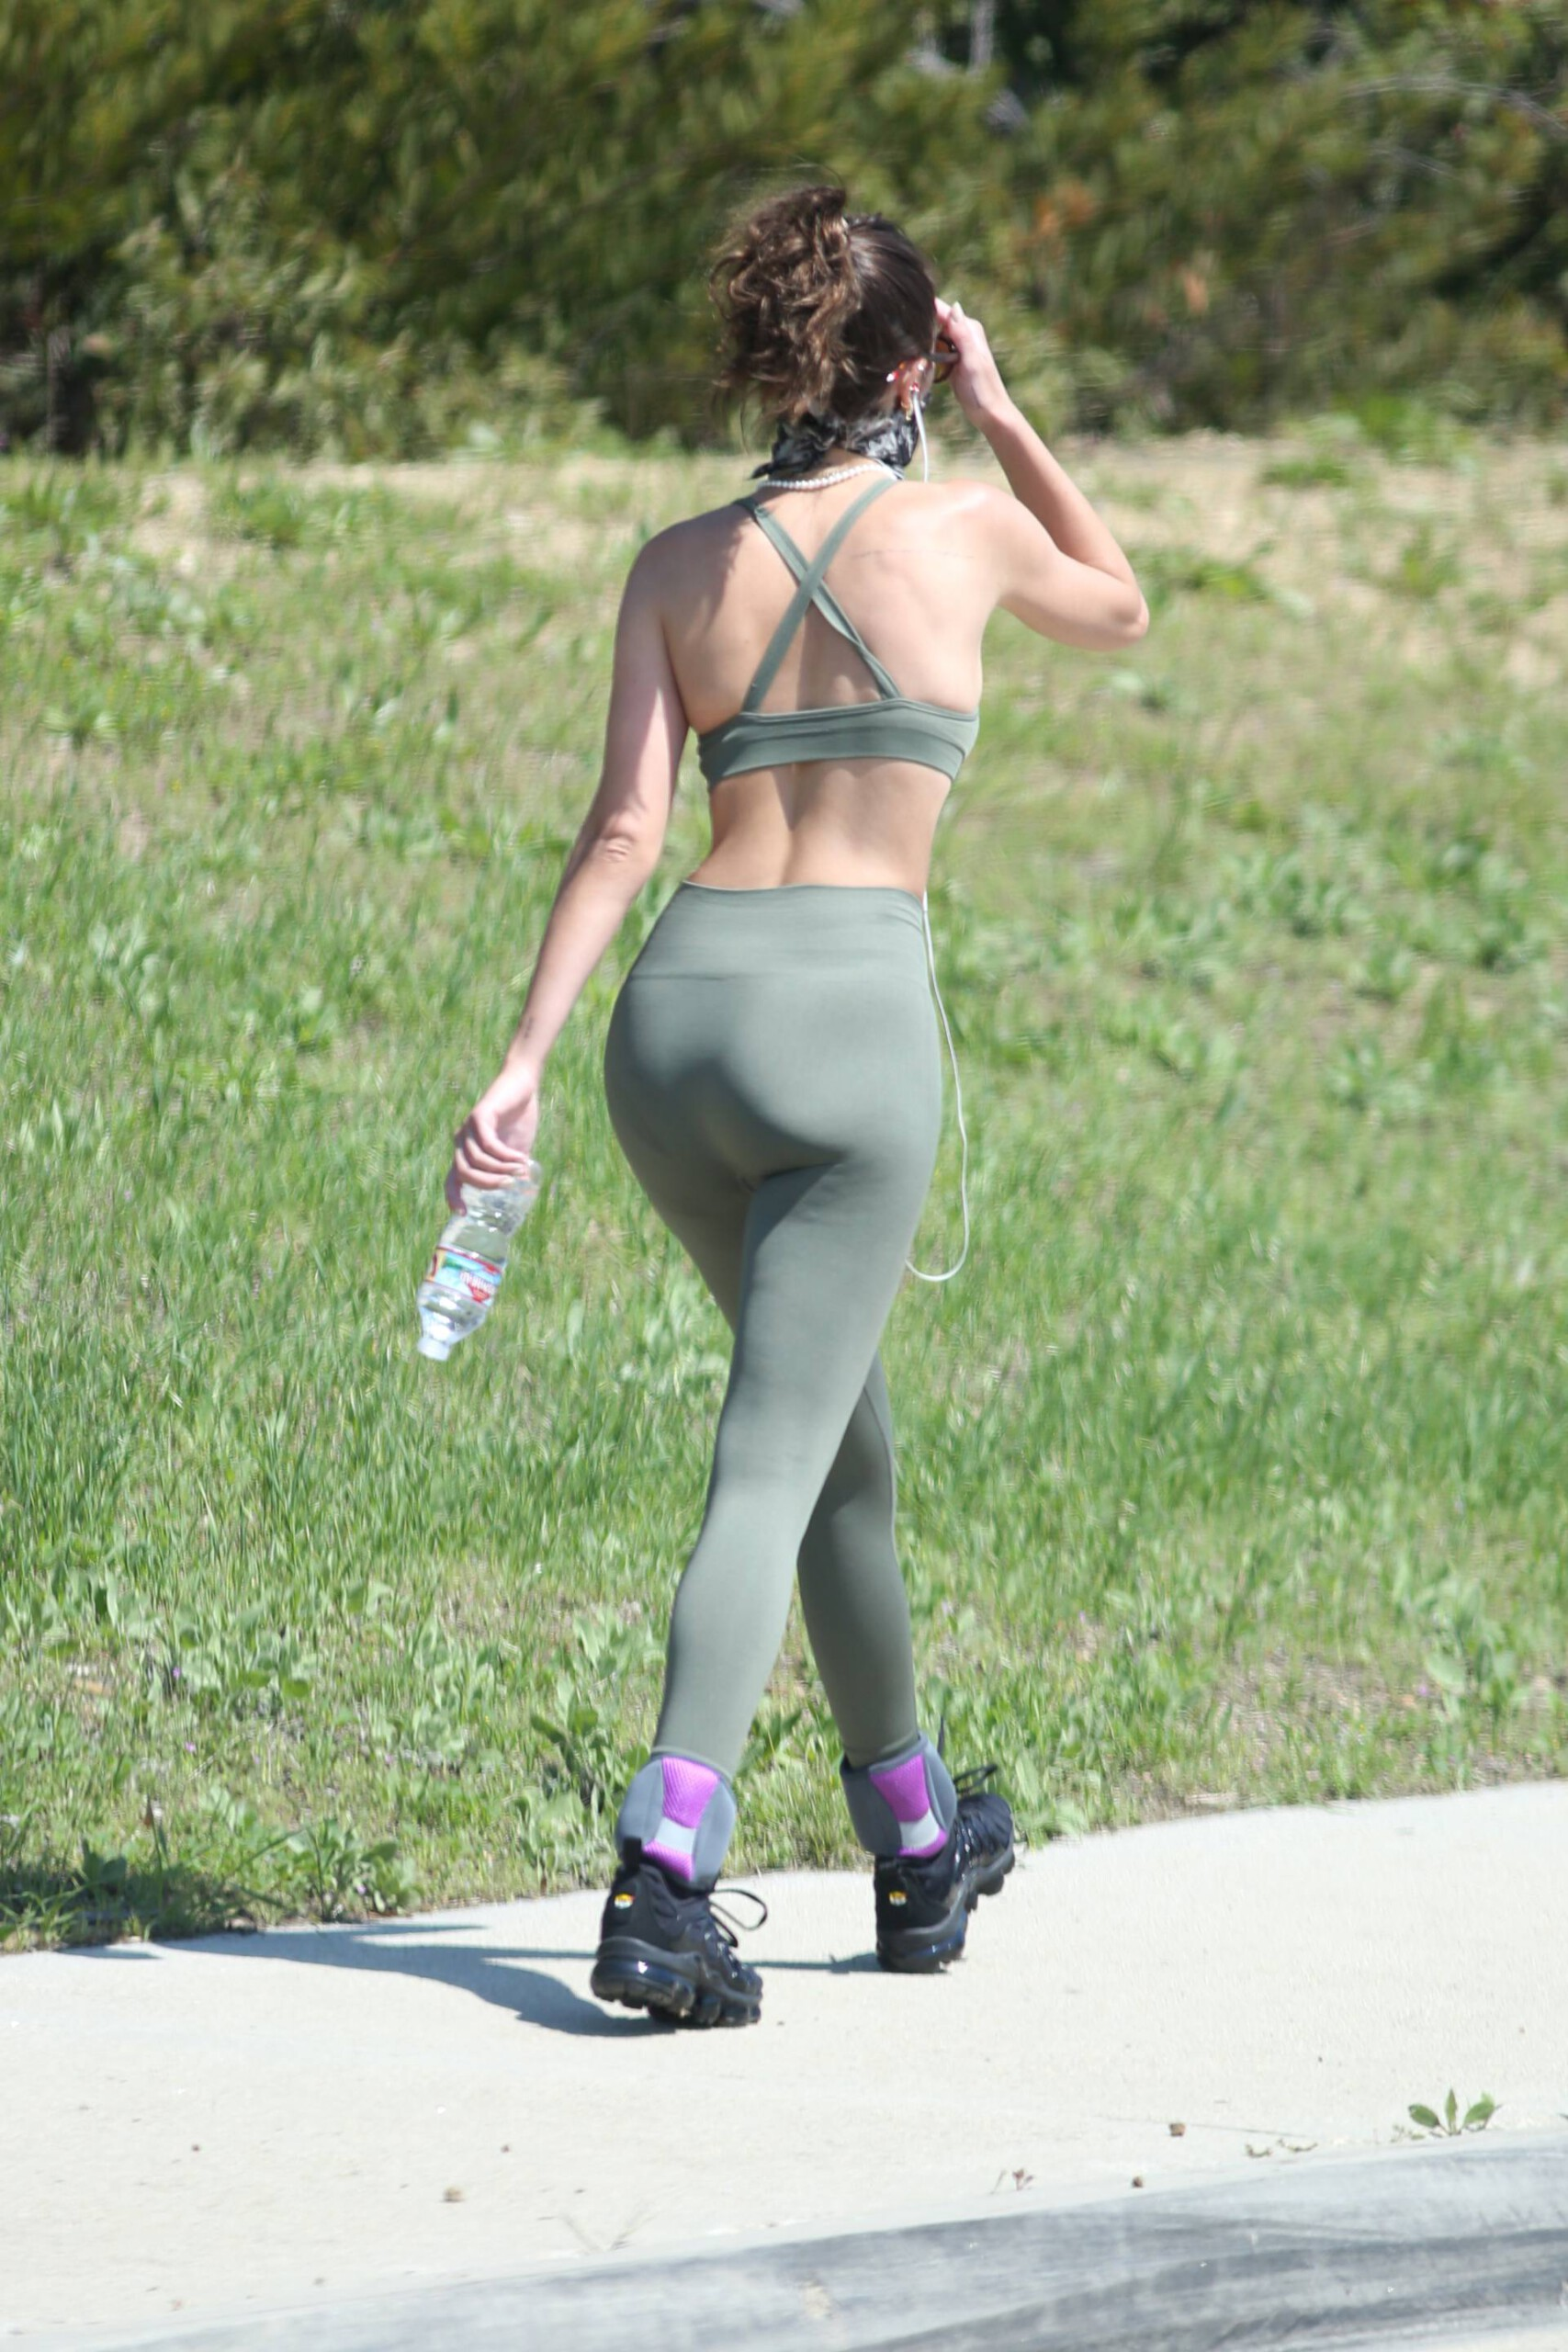 Delilah Belle Hamlin Sexy Ass In Leggings Out On Mulholland Drive In Beverly Hills 0009